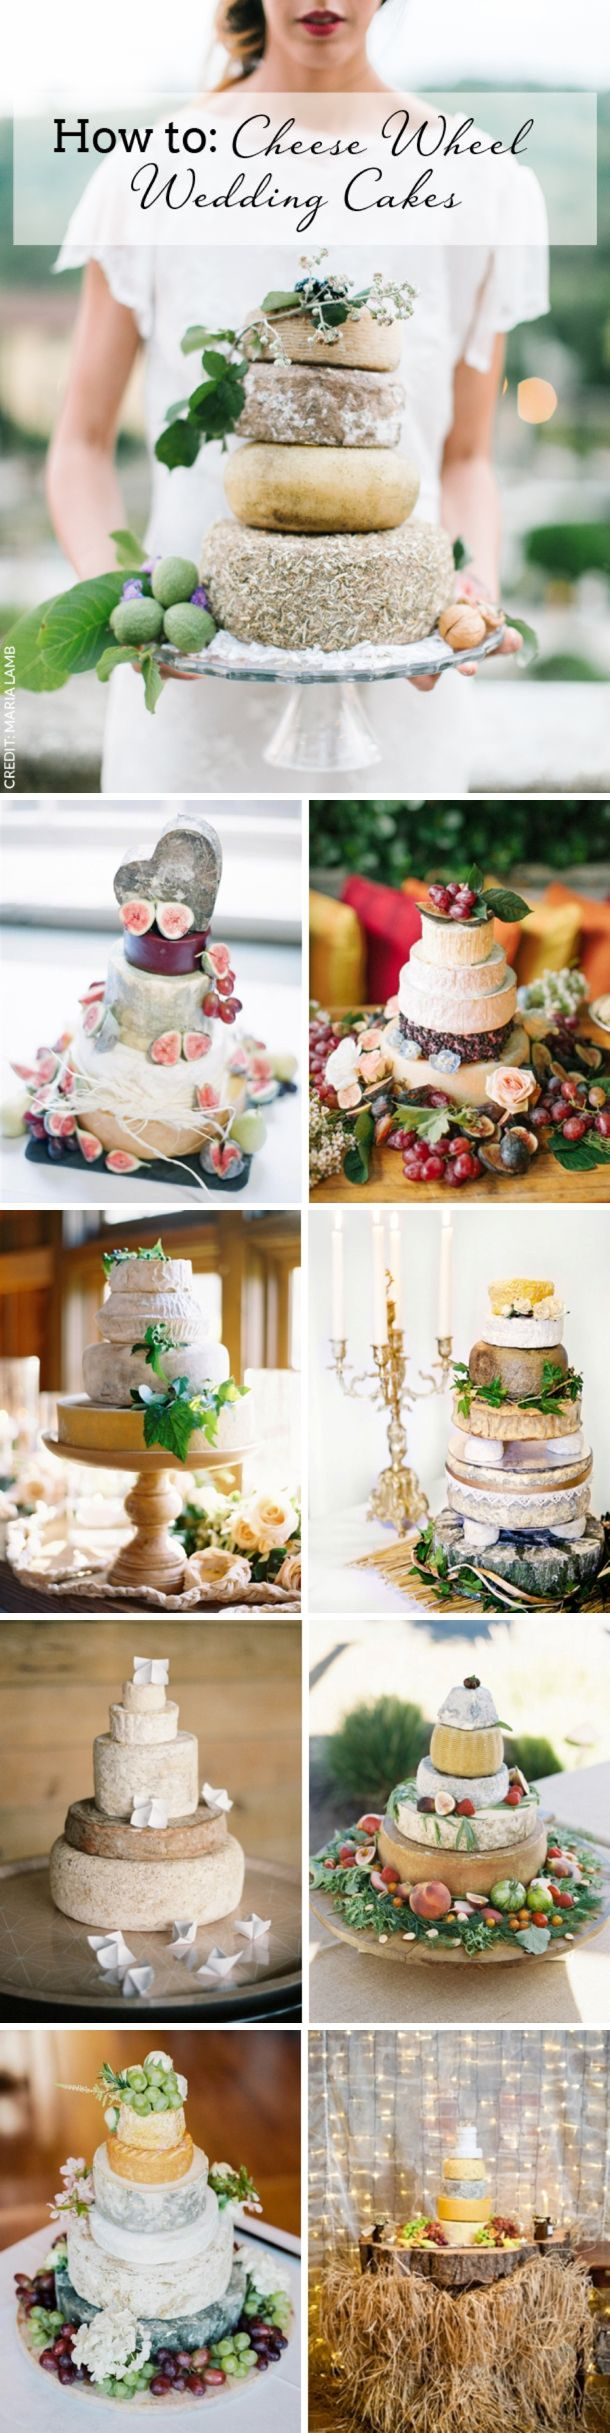 How to DIY a Cheese Wheel Wedding Cake | SouthBound Bride | Full credits &…